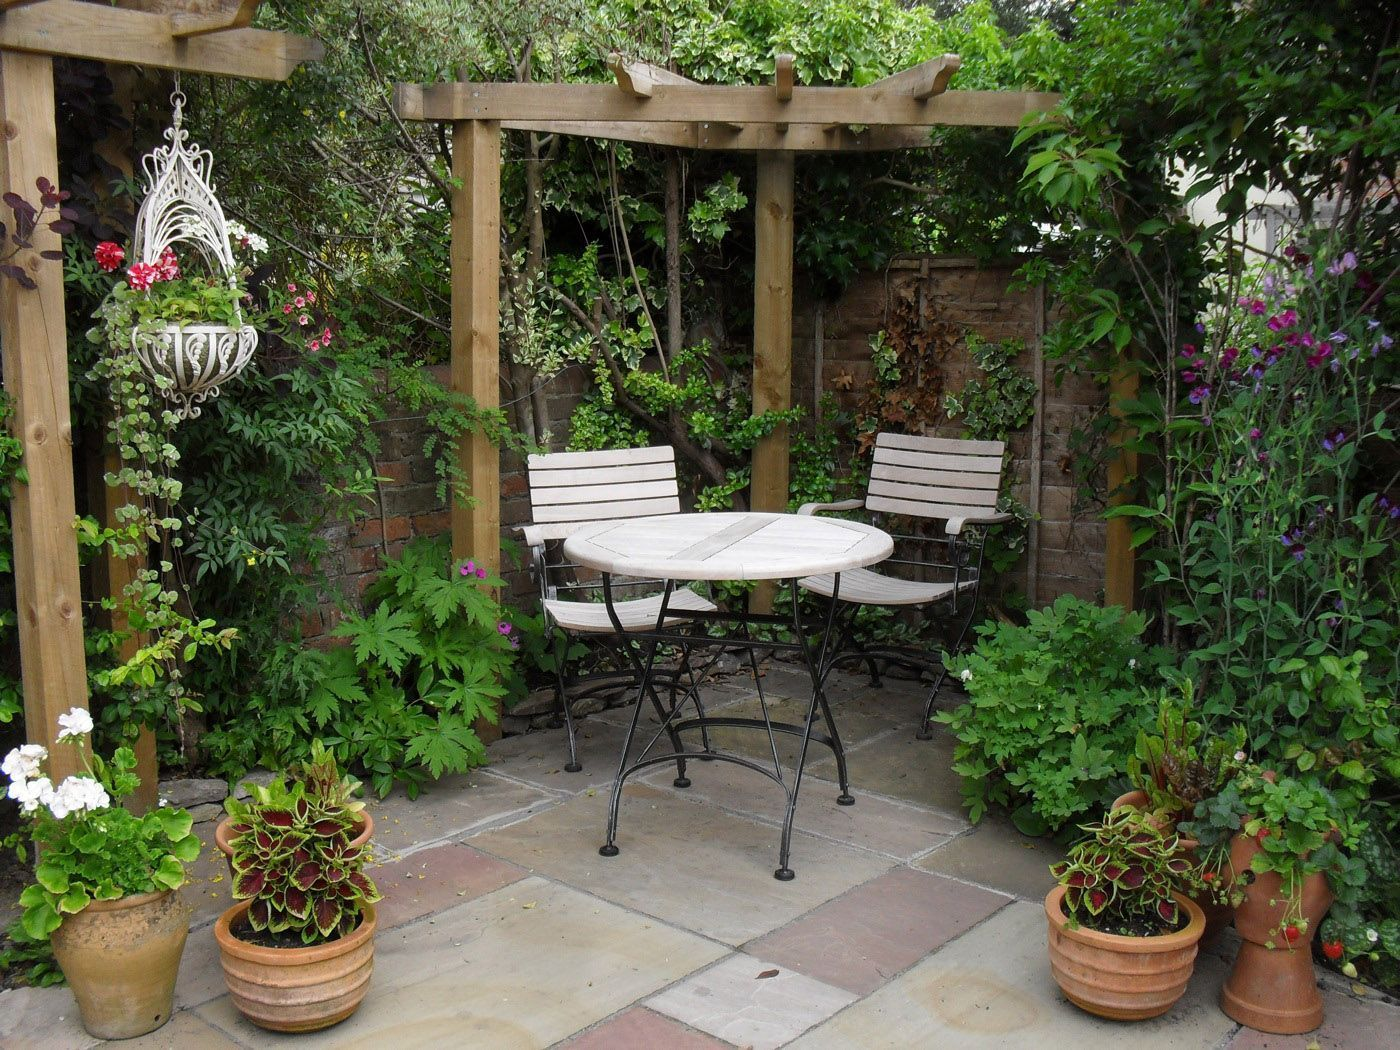 Antique Courtyard Garden listed in Courtyard Landscaping Pictures, courtyard Garden Pictures Design and courtyard Flowers is part of Courtyard garden Modern - gardenpicsandtips com site